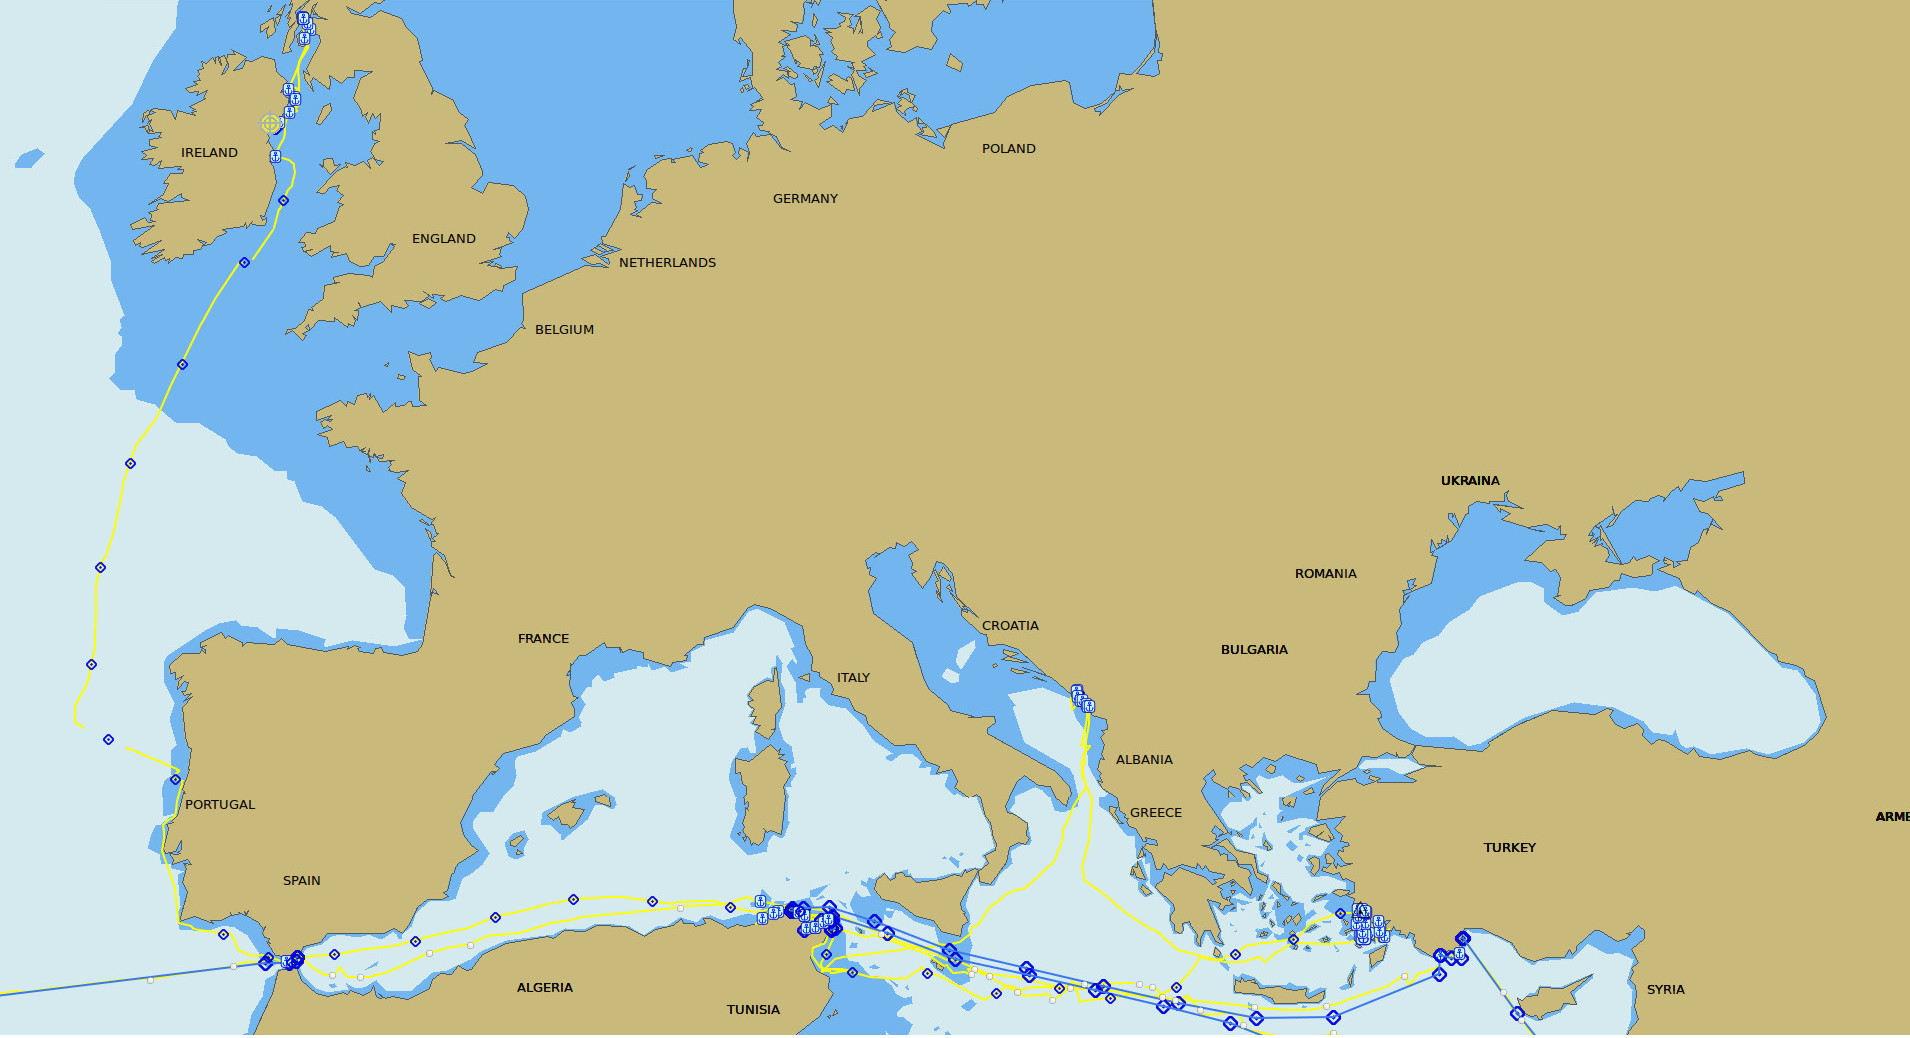 Where is Malaka Queen now? images/chart.jpg